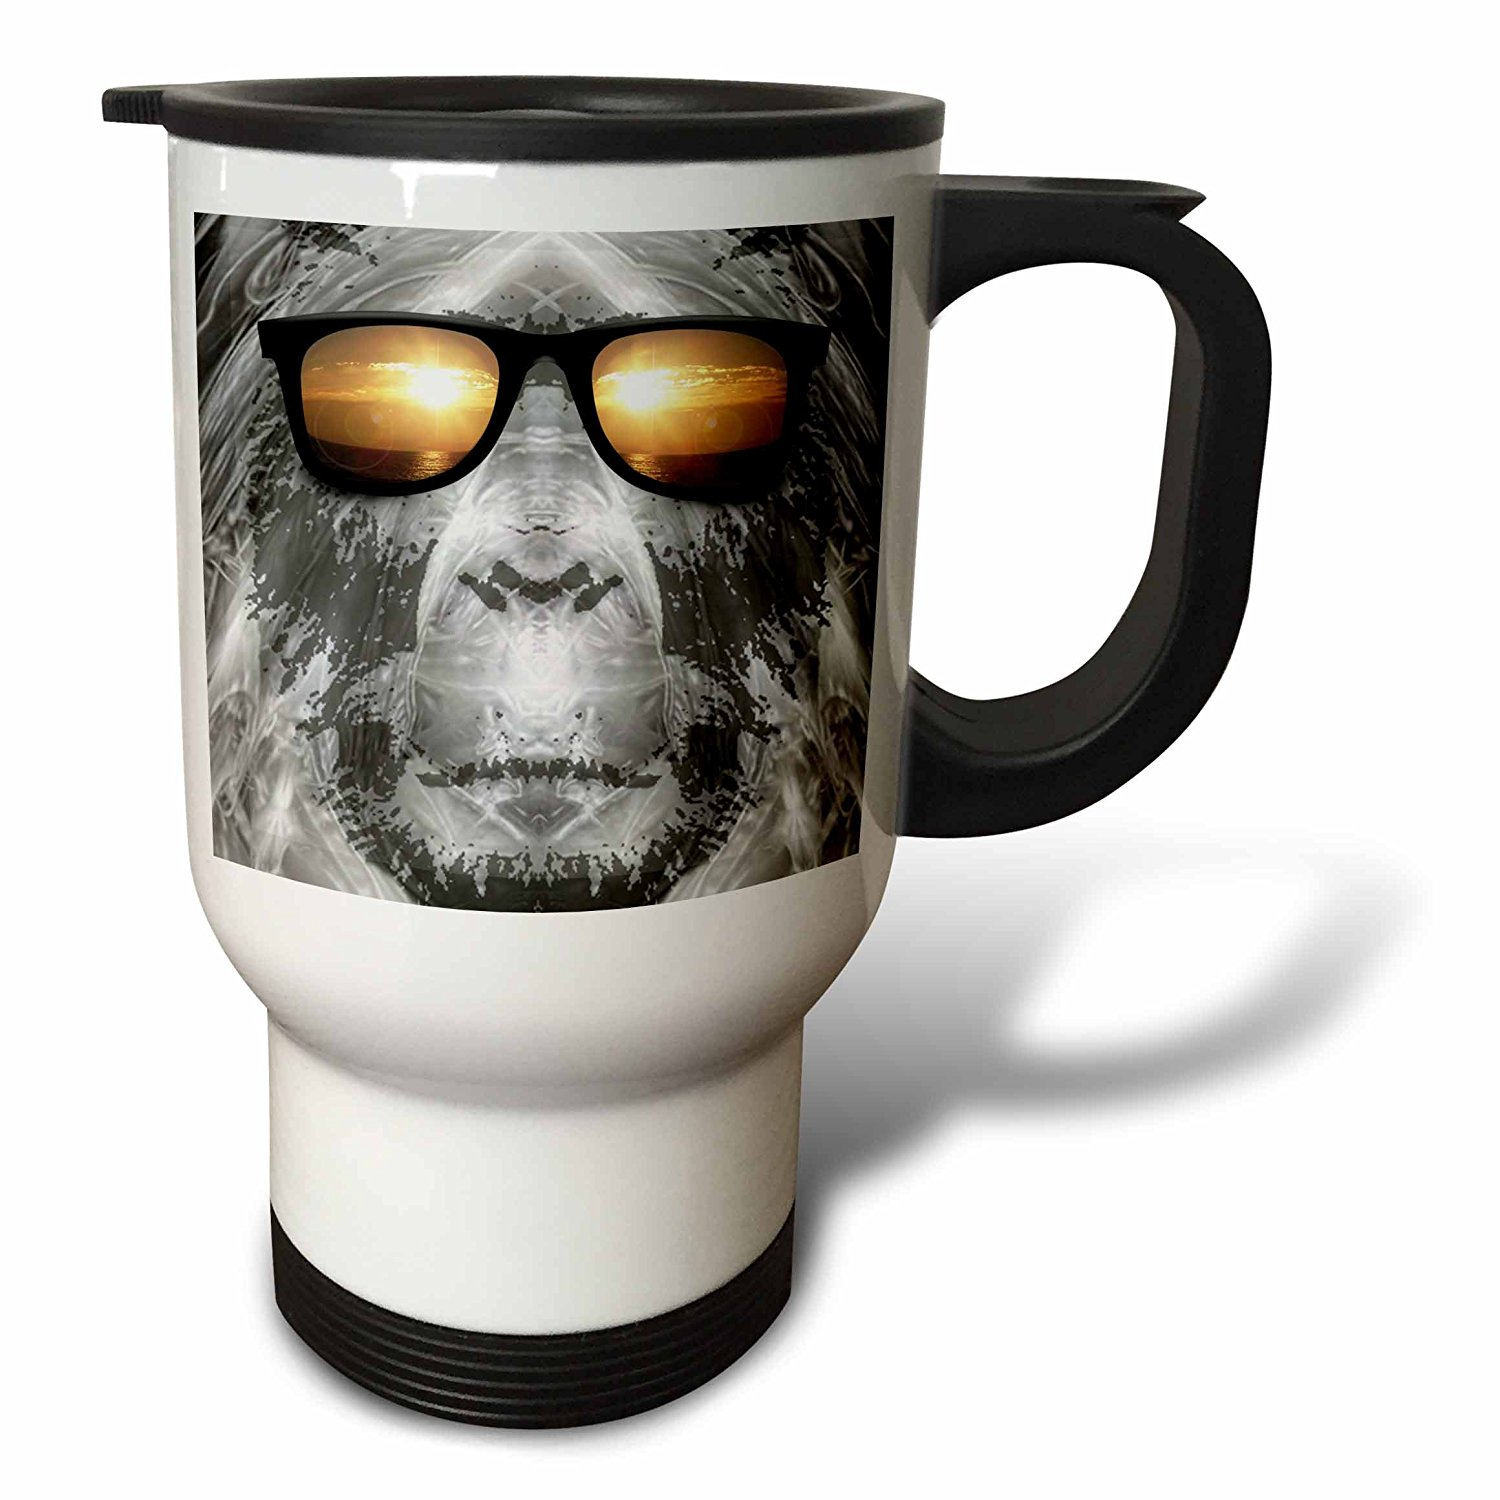 3dRose Bigfoot In Shades Bigfoot or Sasquatch is pictured in style wearing sunglasses, Travel Mug, 14oz, Stainless Steel